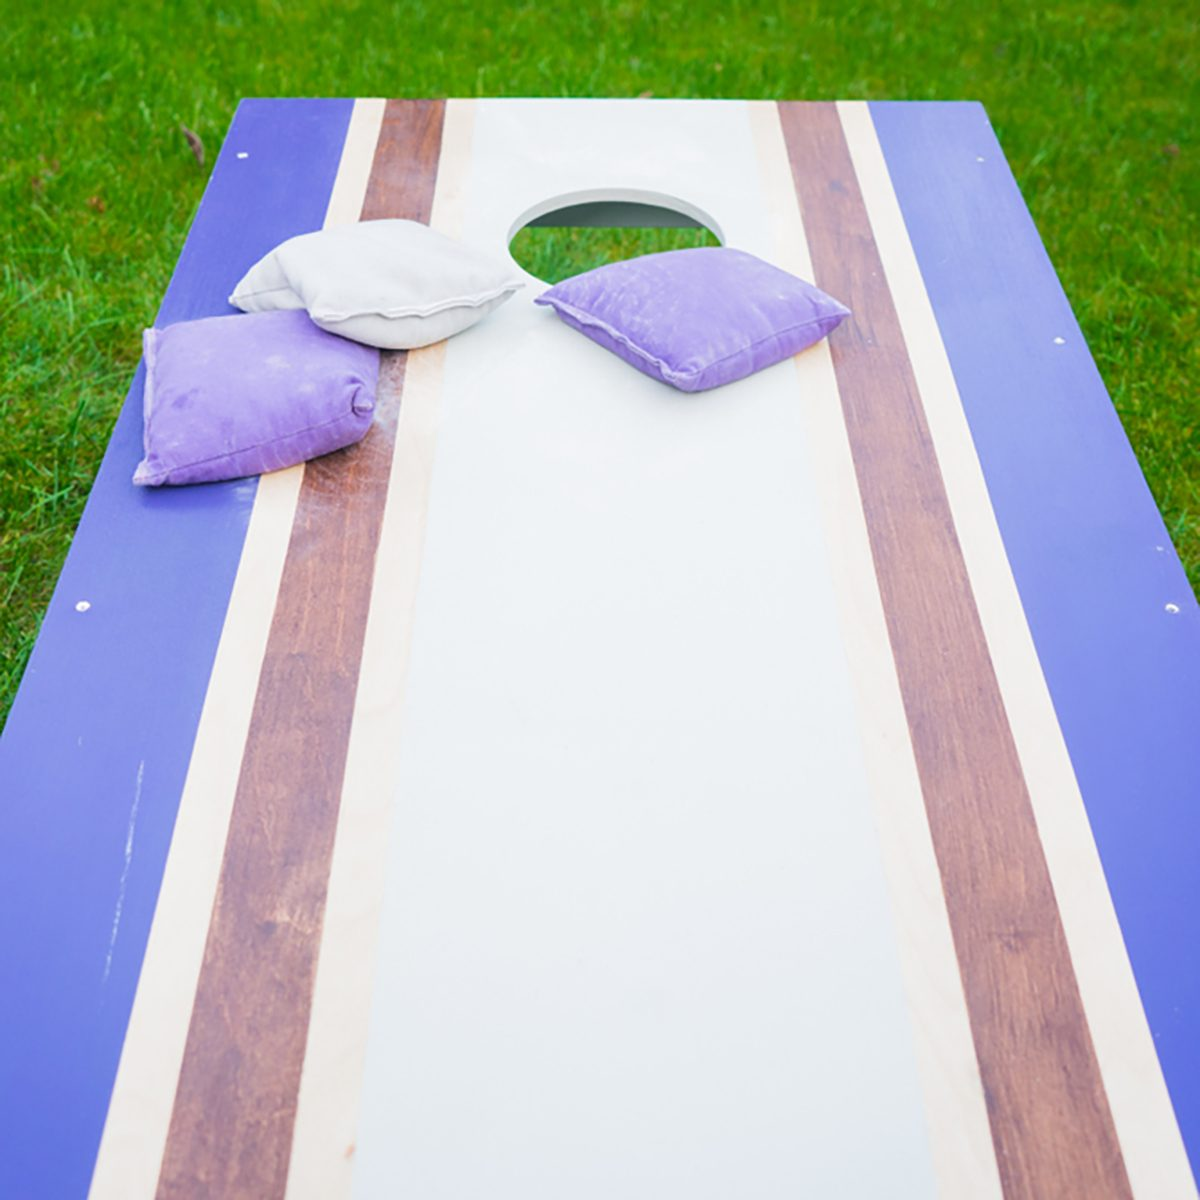 Cornhole bean bag toss wood game board outside on grass